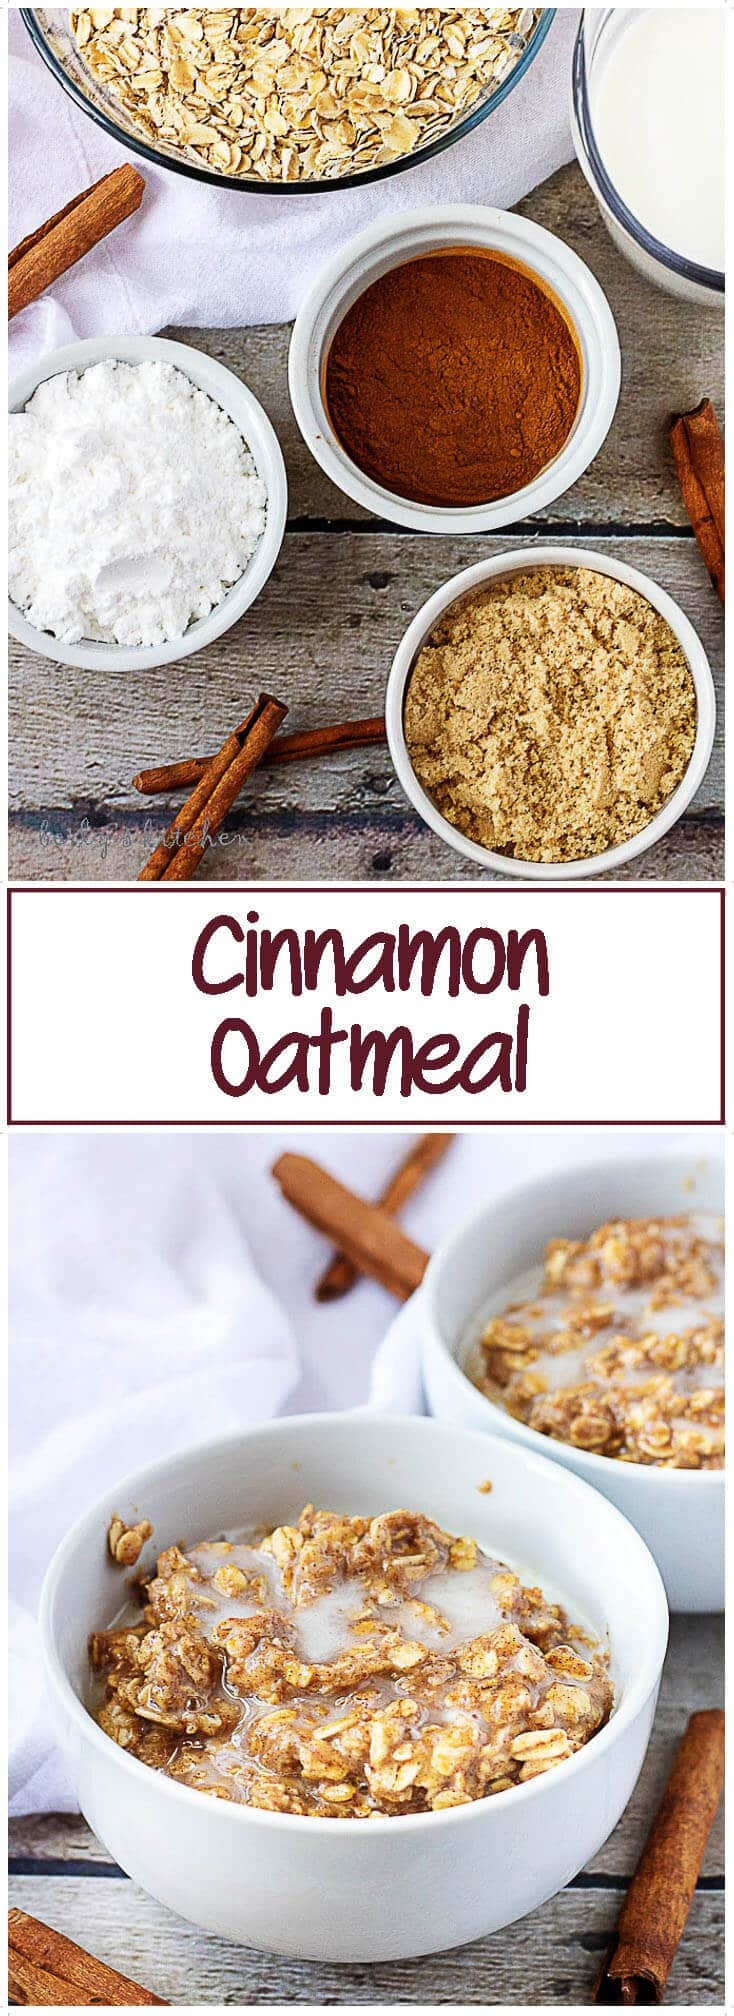 Swirls of cinnamon, brown sugar and vanilla cream cheese top soft, warm oatmeal in this inviting, protein filled breakfast dish. One bite of our cinnamon oatmeal and you'll be in love. #cinnamon #breakfast #comfortfood #sweet #oatmeal #berlyskitchen